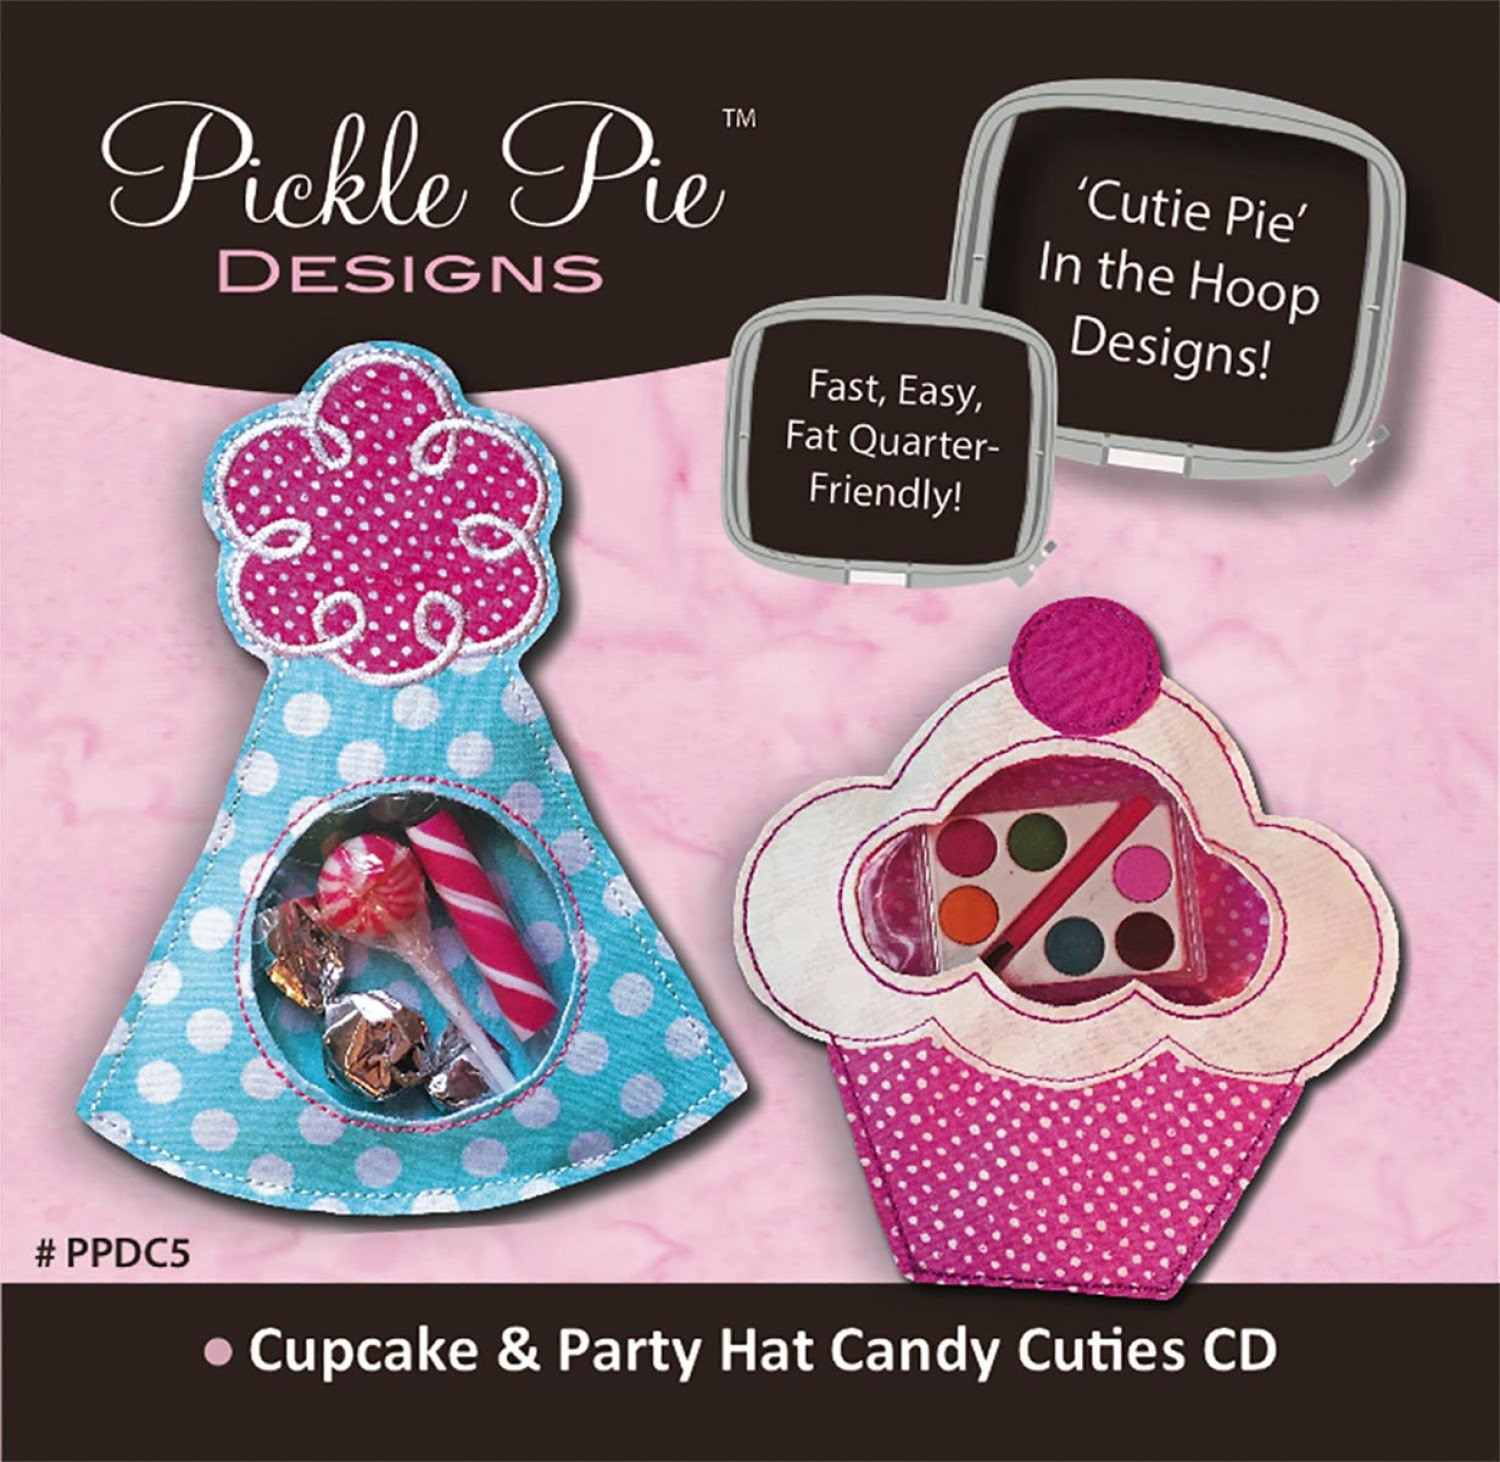 Cupcake & Party Hat Candy Cuties Embroidery CD